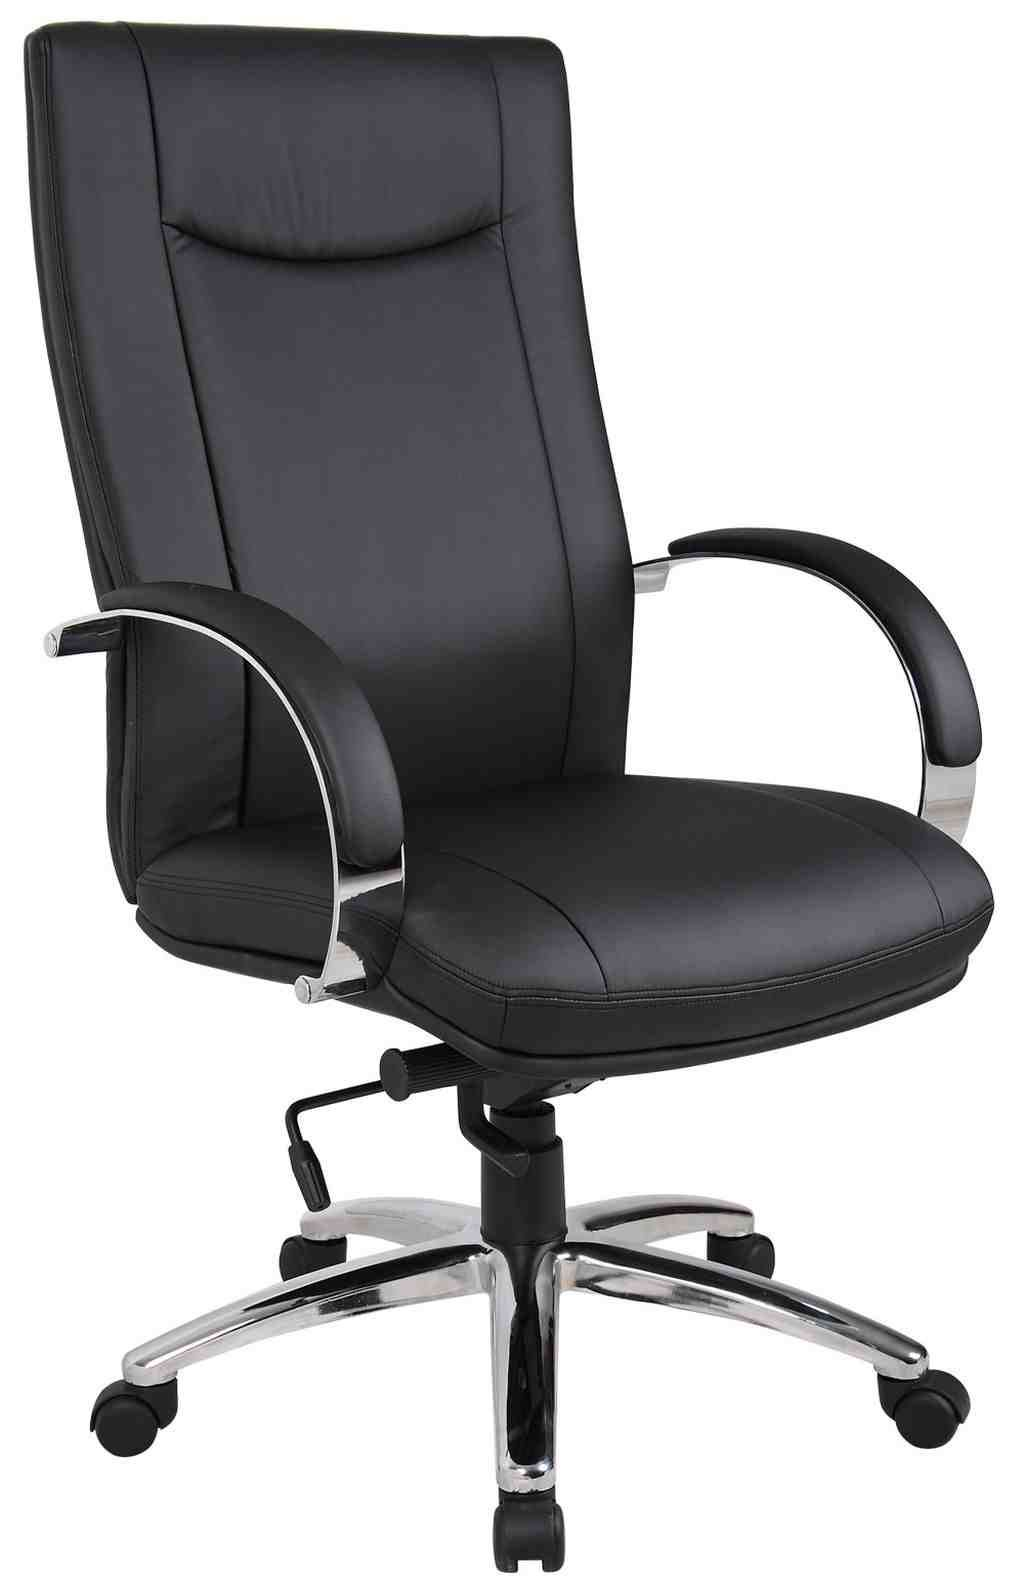 Genuine Leather Office Chair Leather Office Chair Best Office Chair Office Chairs Canada